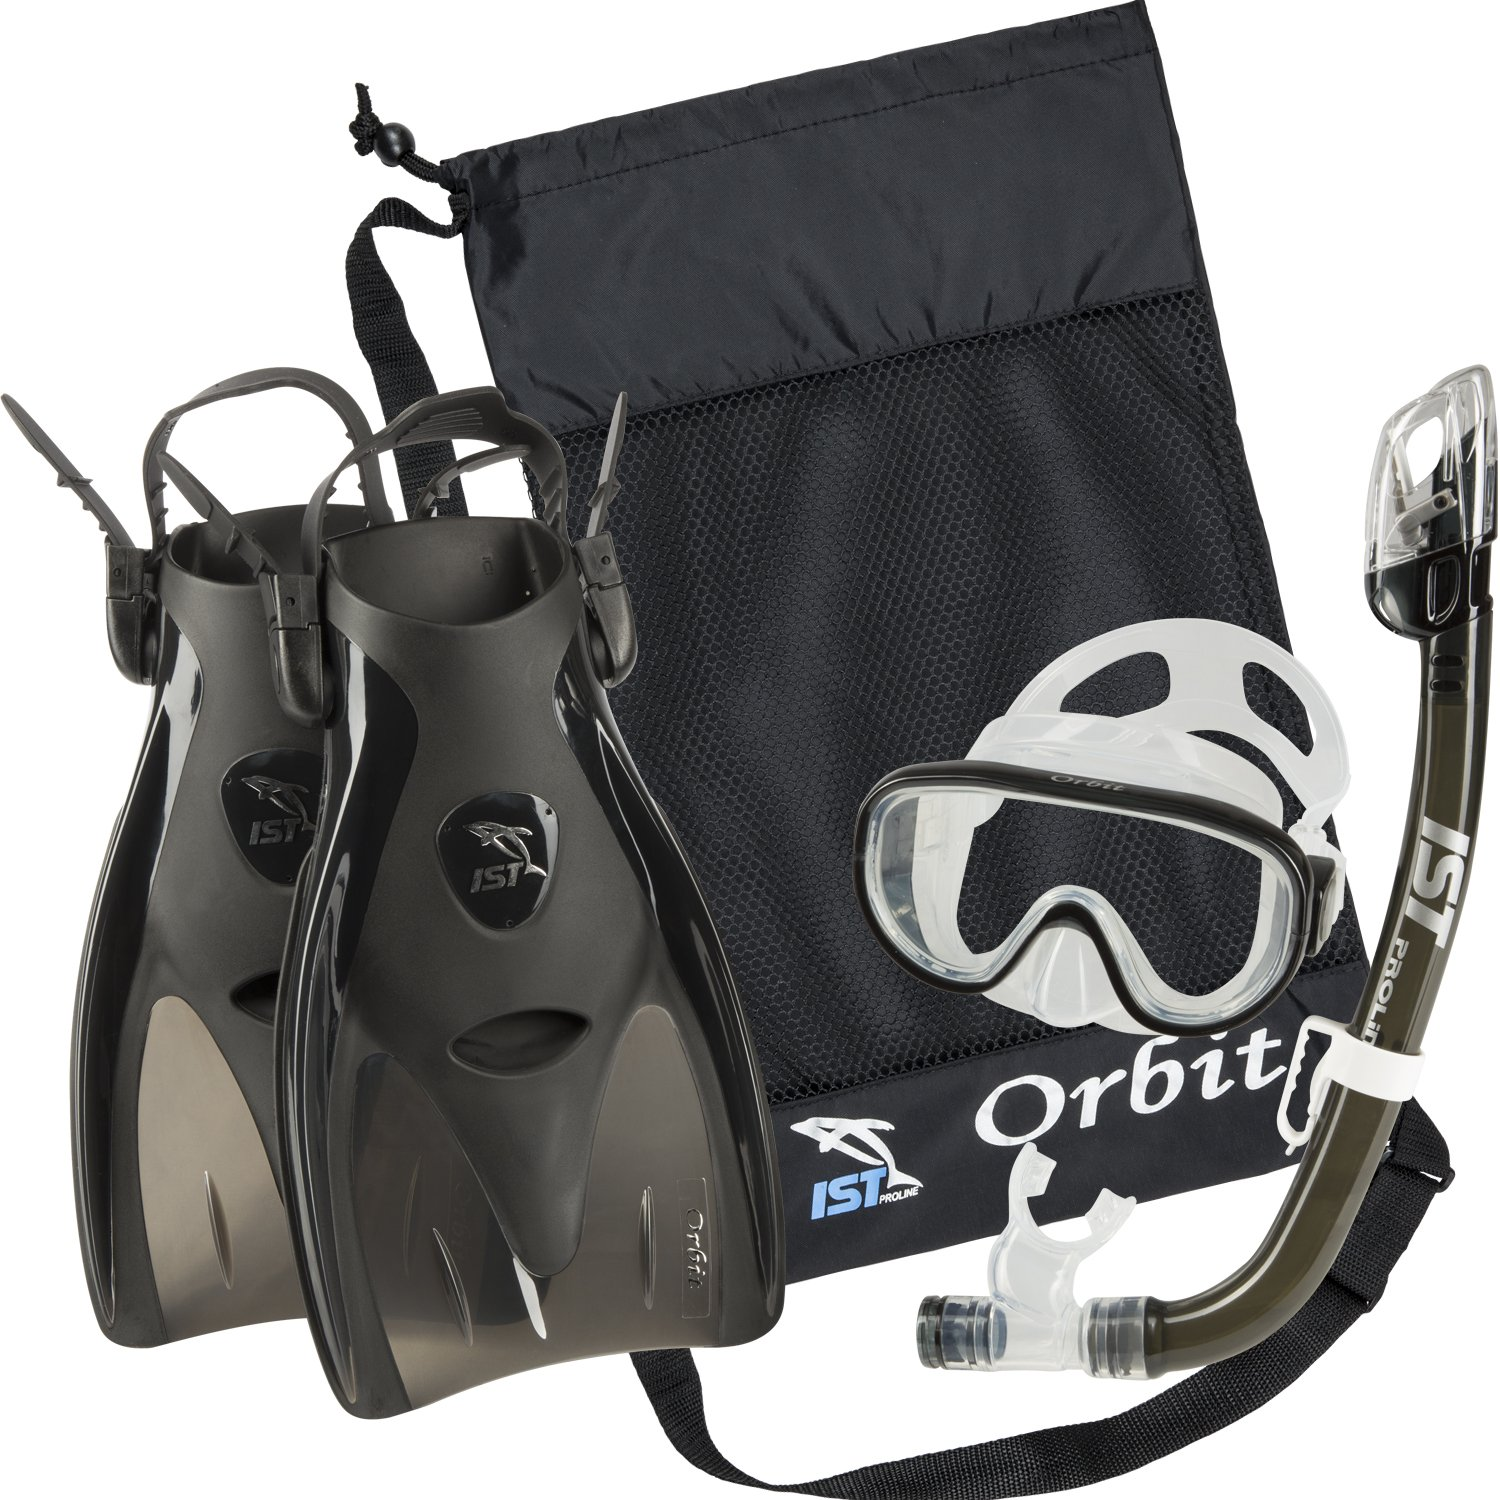 IST Orbit Snorkel Set (Black, Medium (5-8))